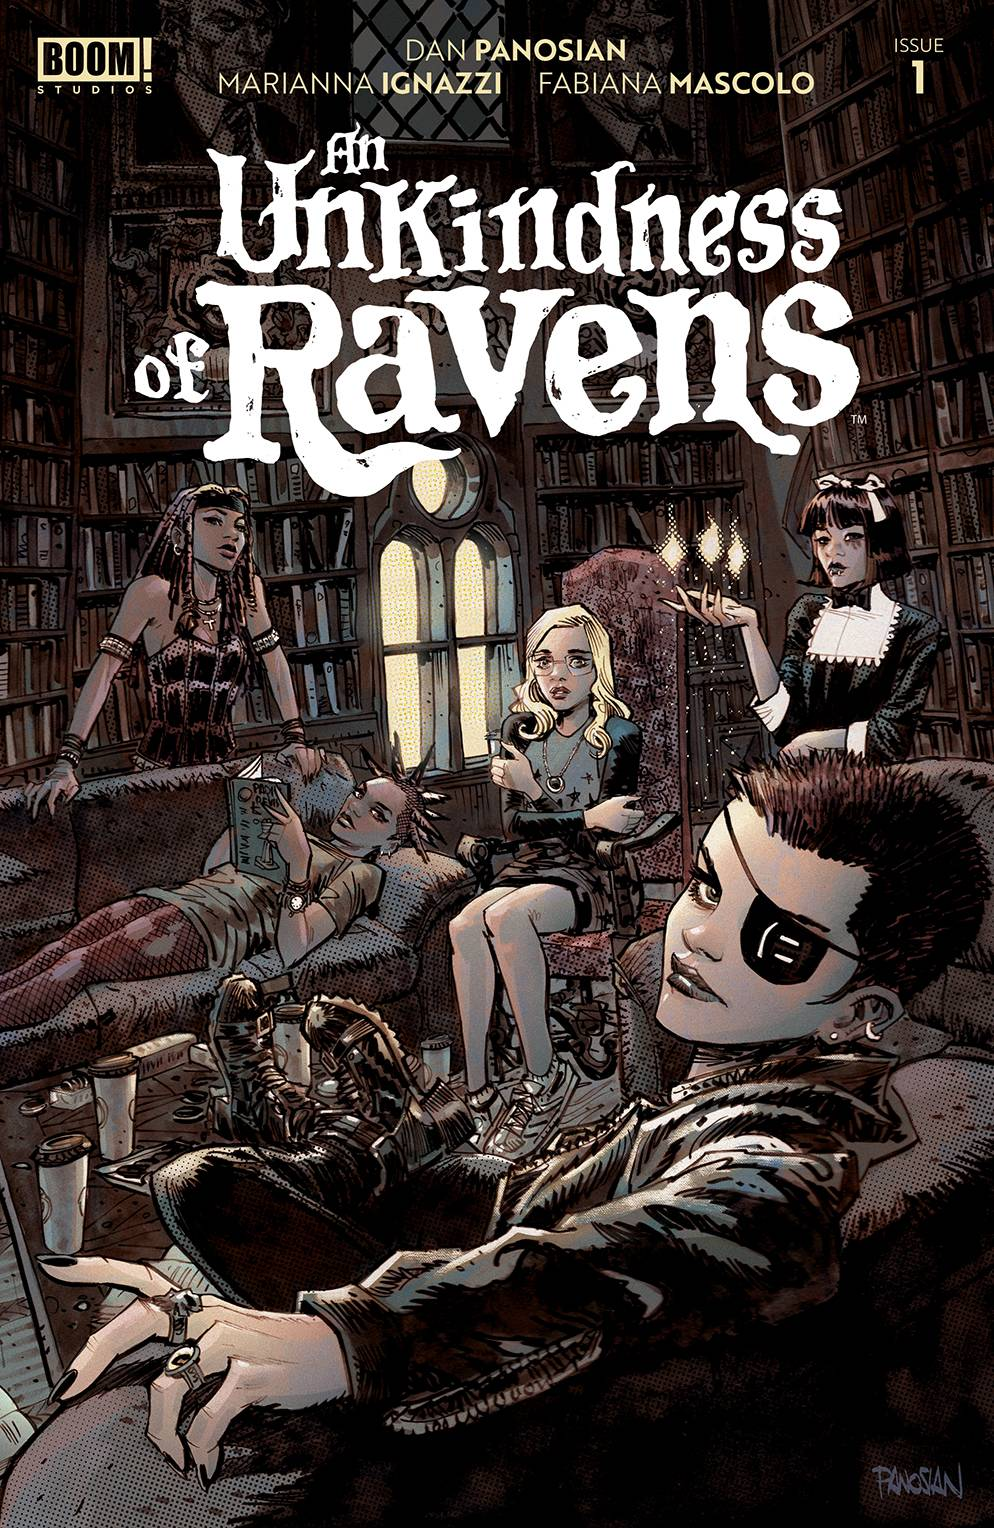 The Unkindness of Ravens #1